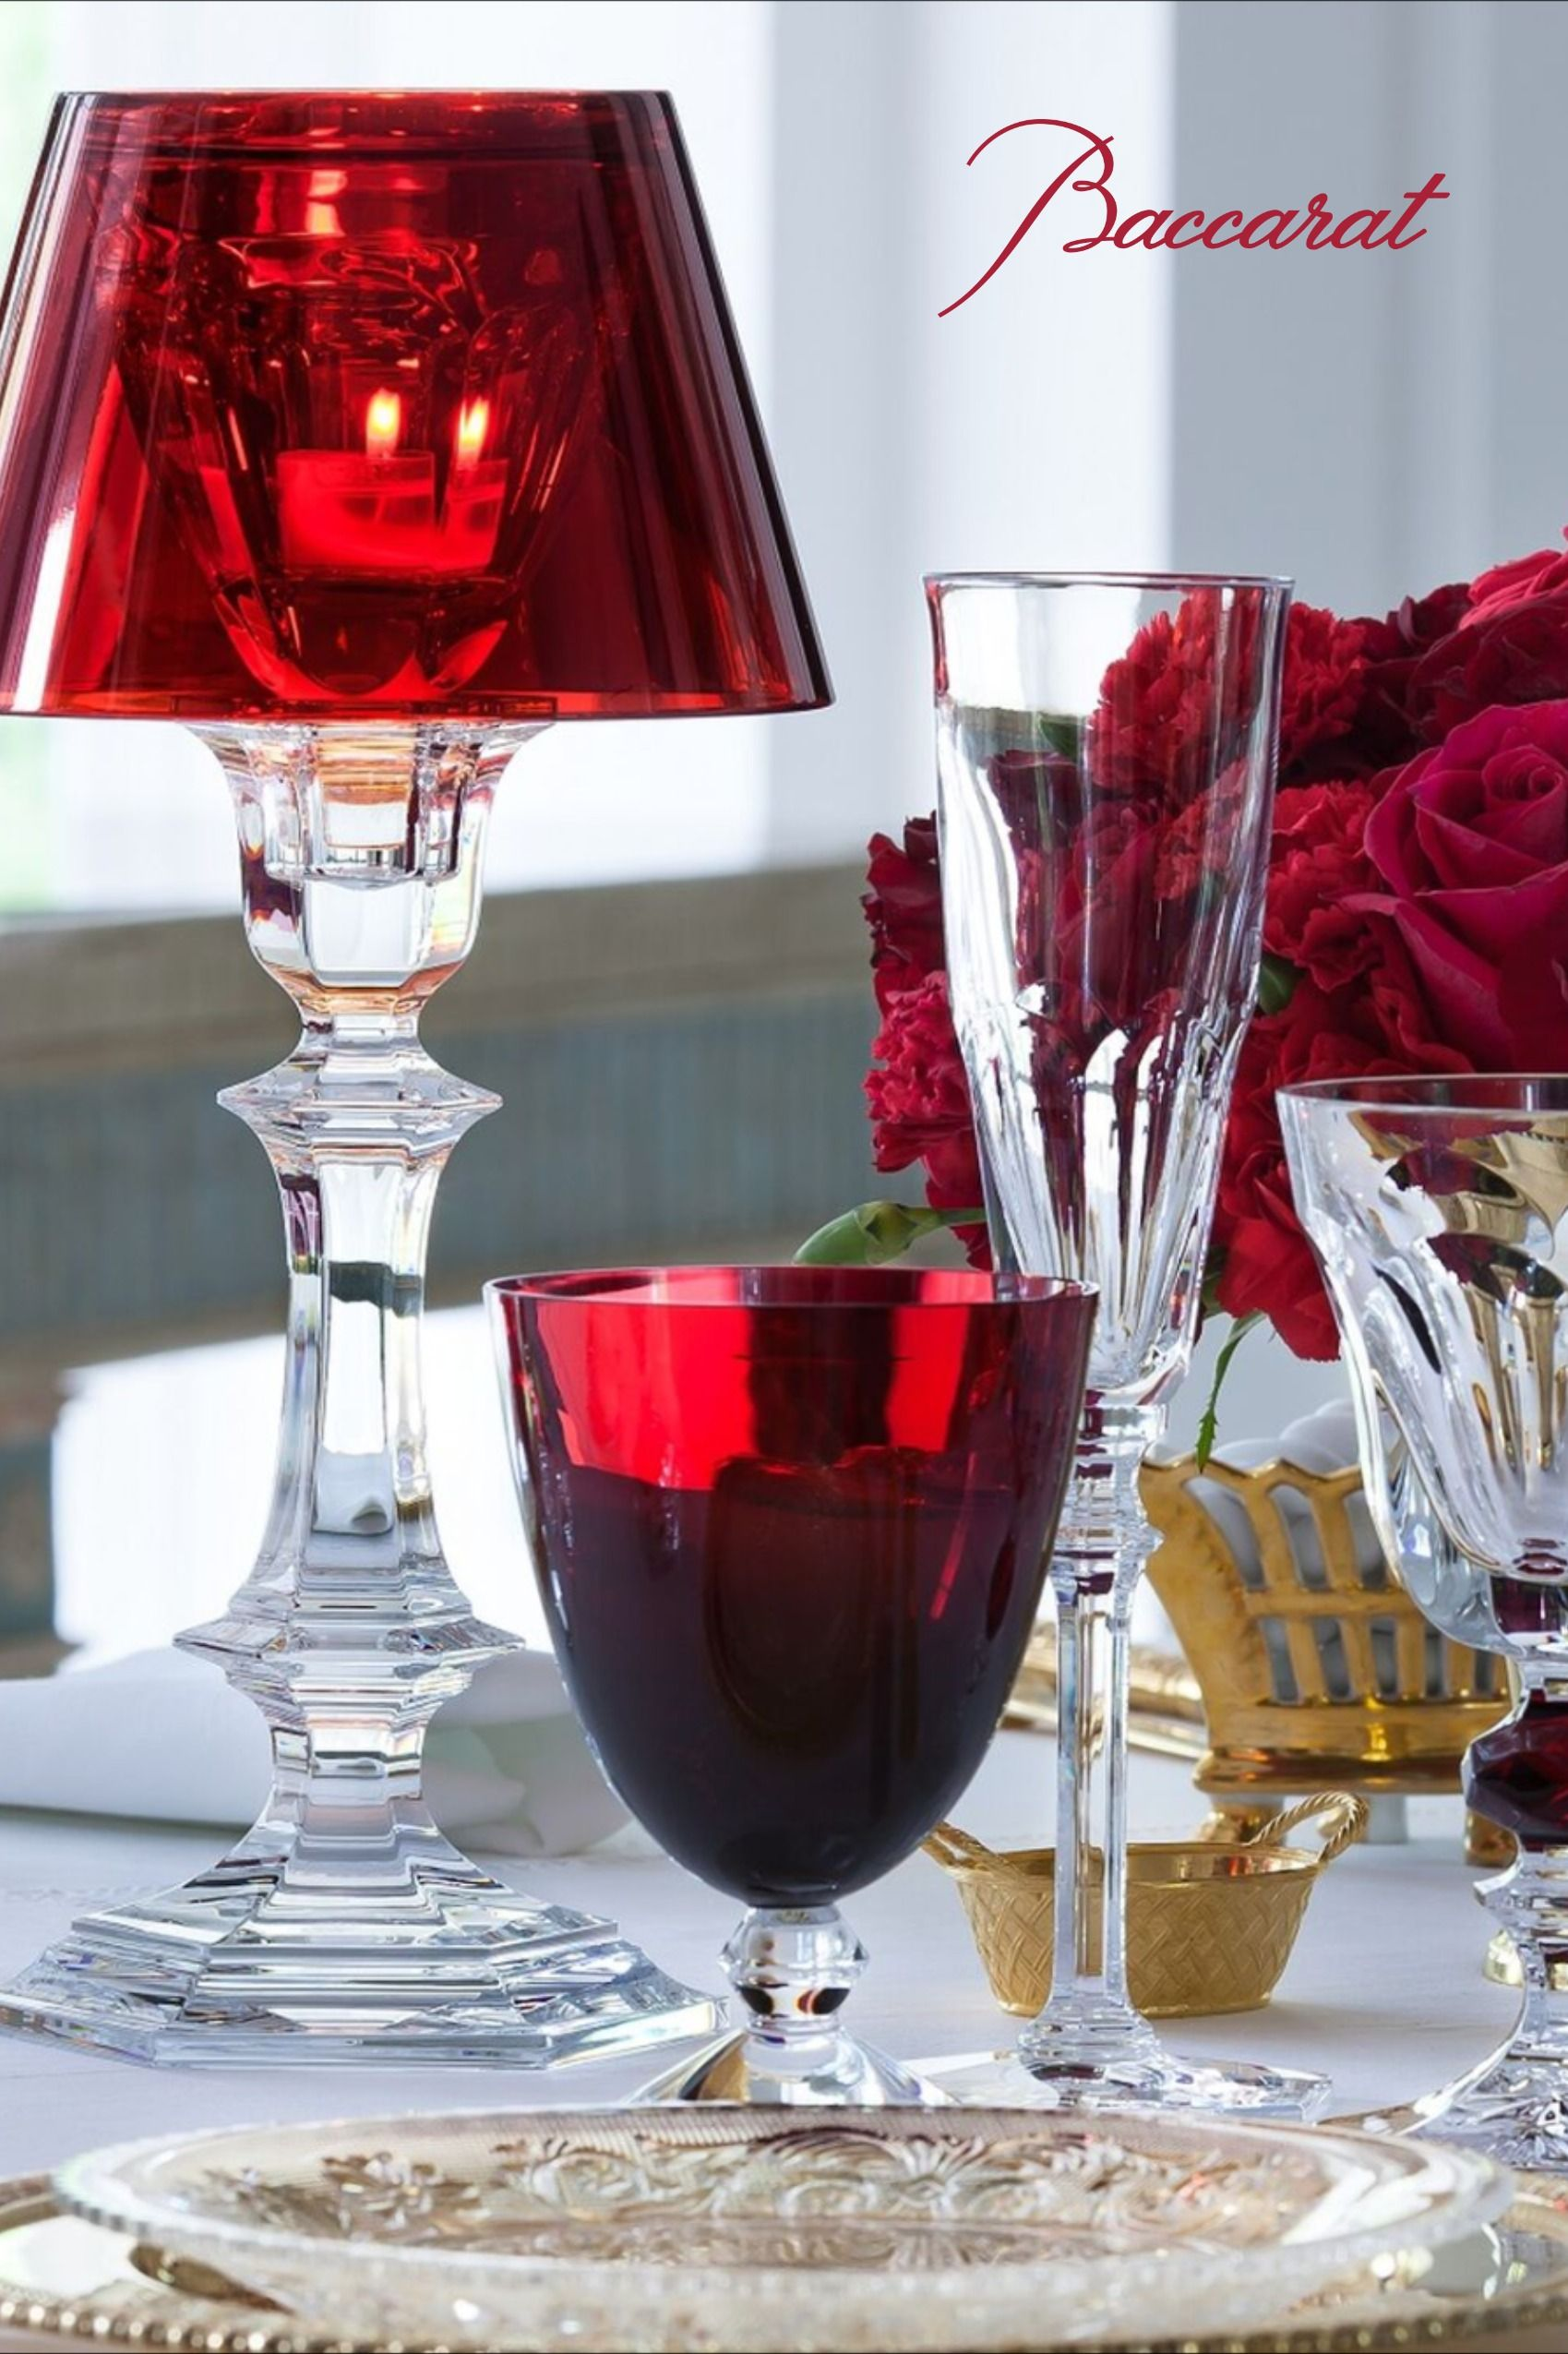 Vega Glass In 2020 Baccarat Crystal Glass Gifts Glass